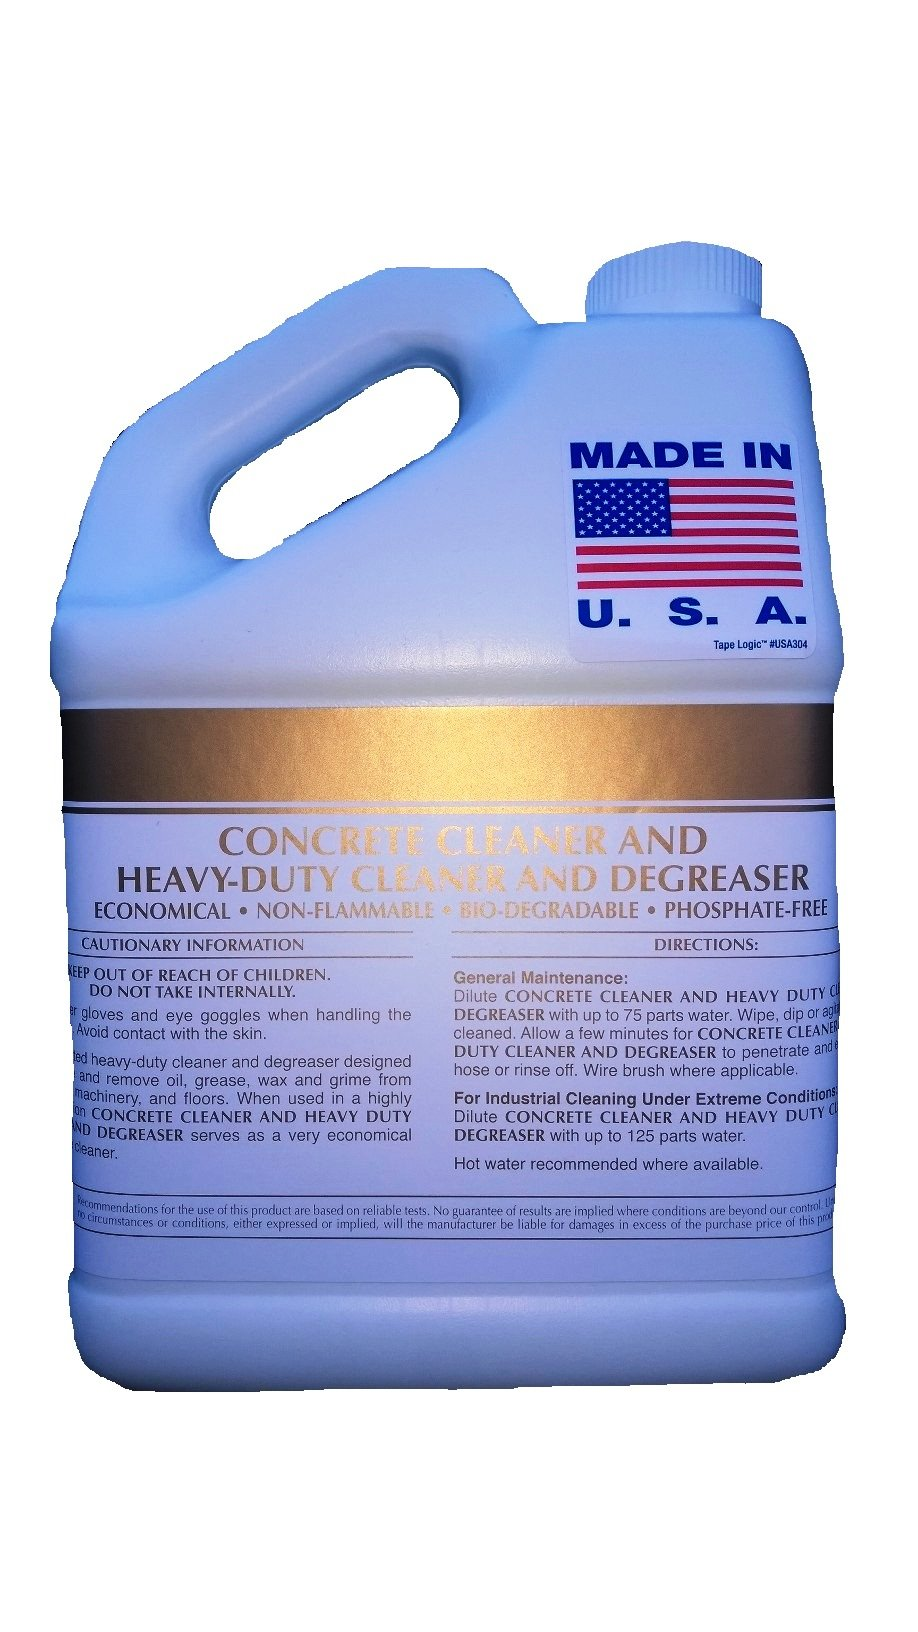 Patriot Chemical Sales Four 1 Gallon Concrete Cleaner Degreaser Heavy-duty Industrial Strength Concentrate